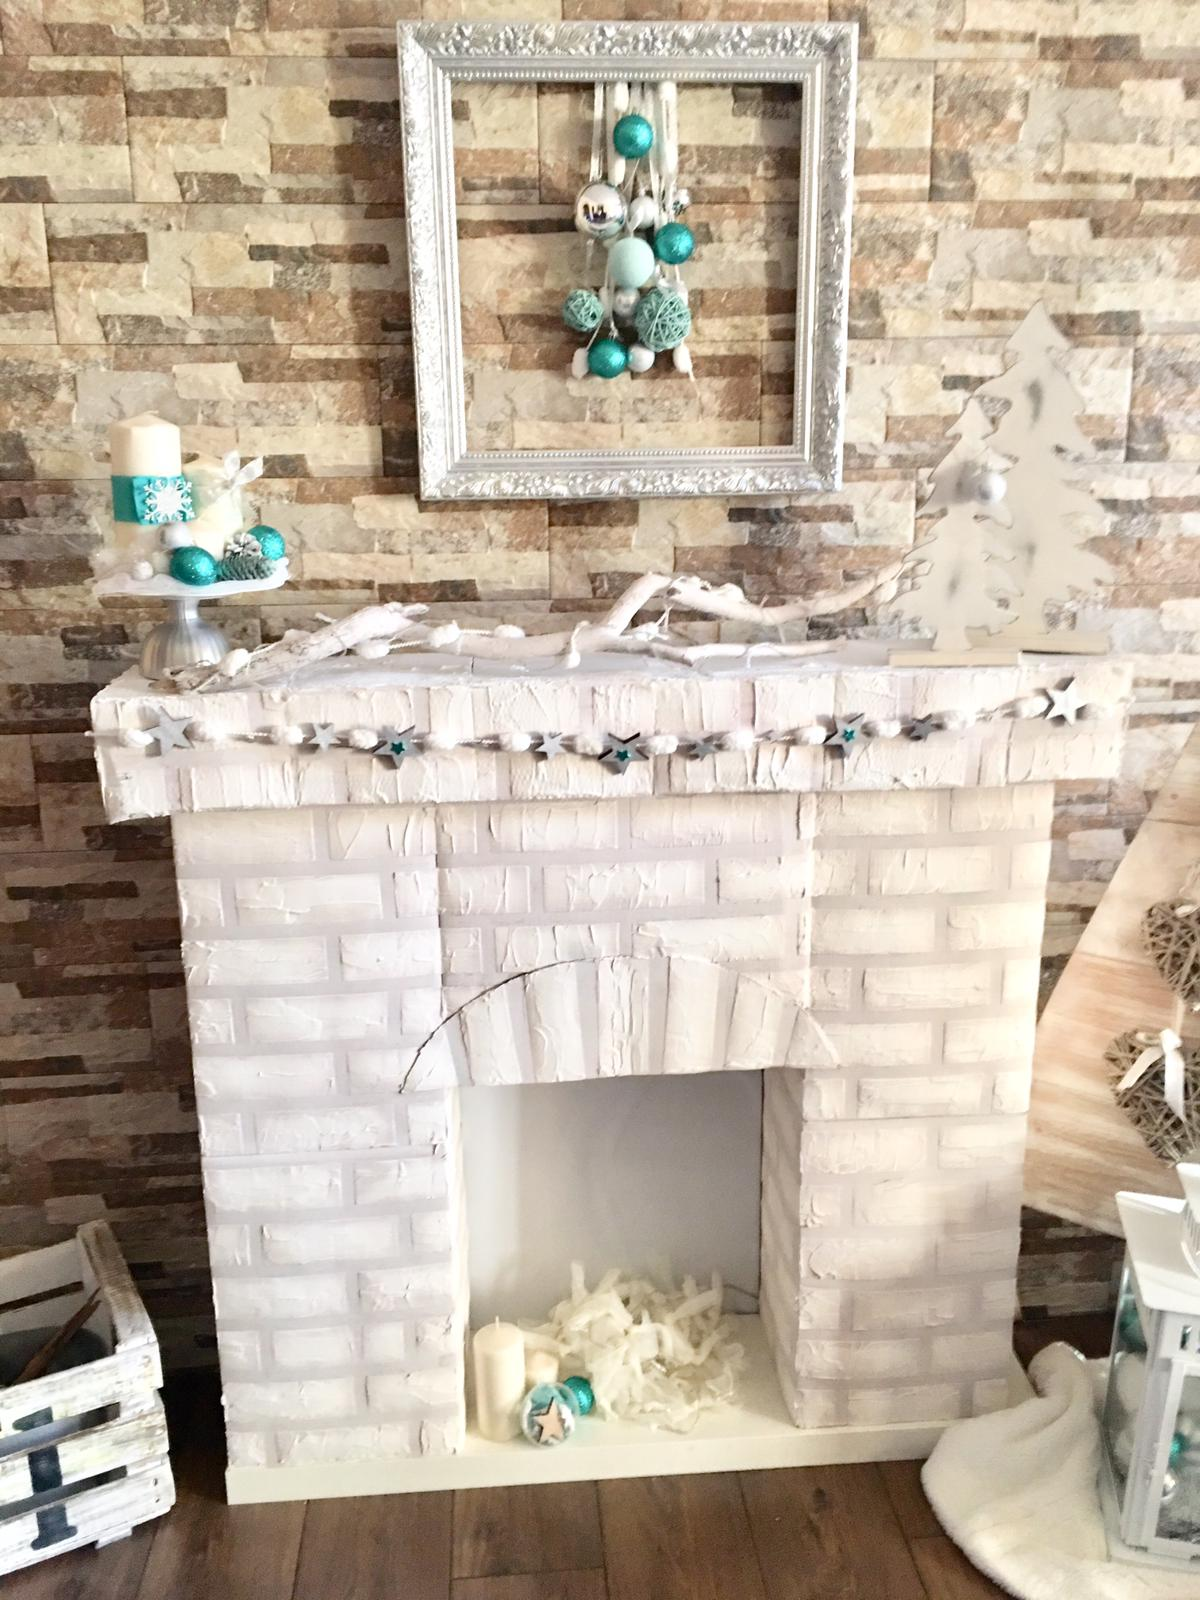 the finished artificial christmas fireplace